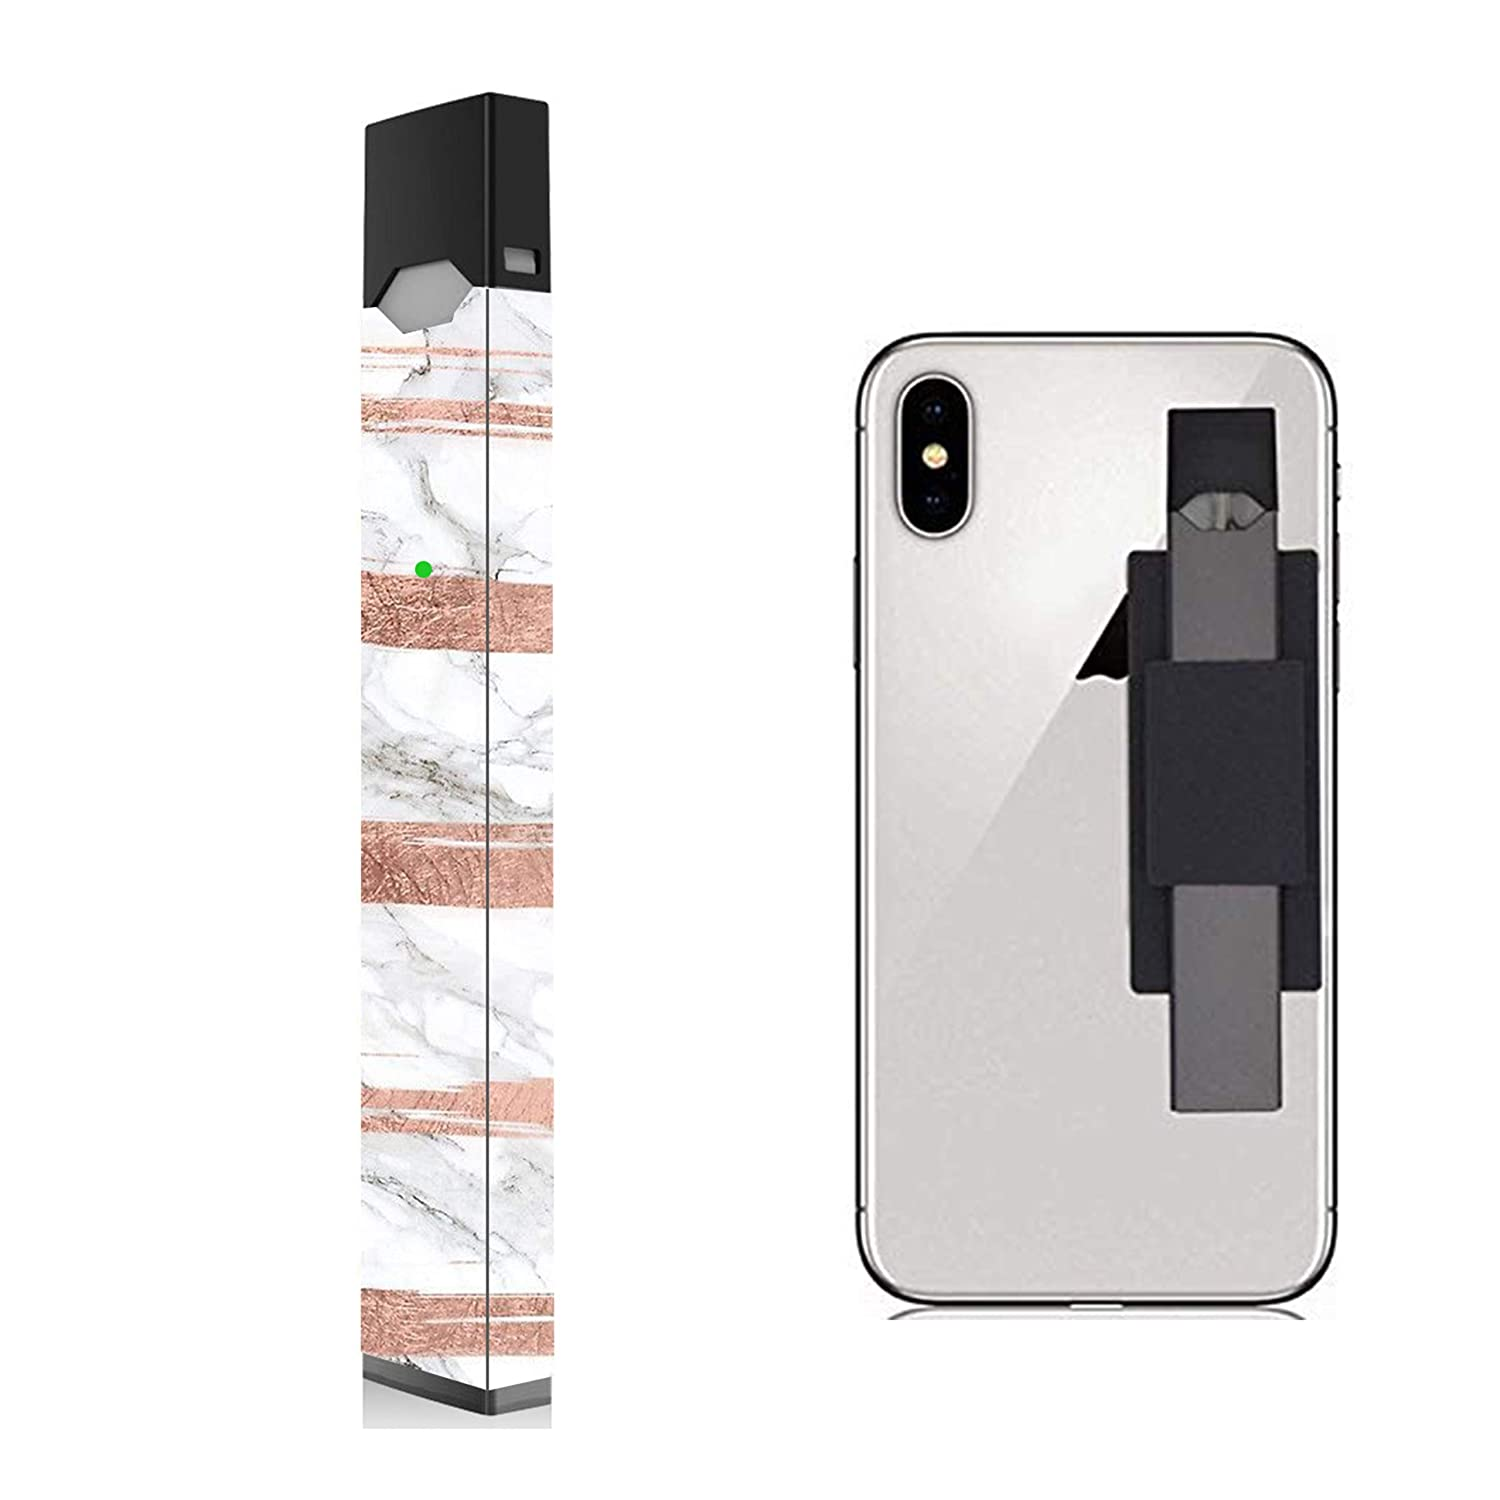 2 Pack - Marble with Rose Gold Juul Skin and Phone Holder for Device | Juul  Decal | Juul Wrap | Juul Sticker | Juul Case | Juul Holder